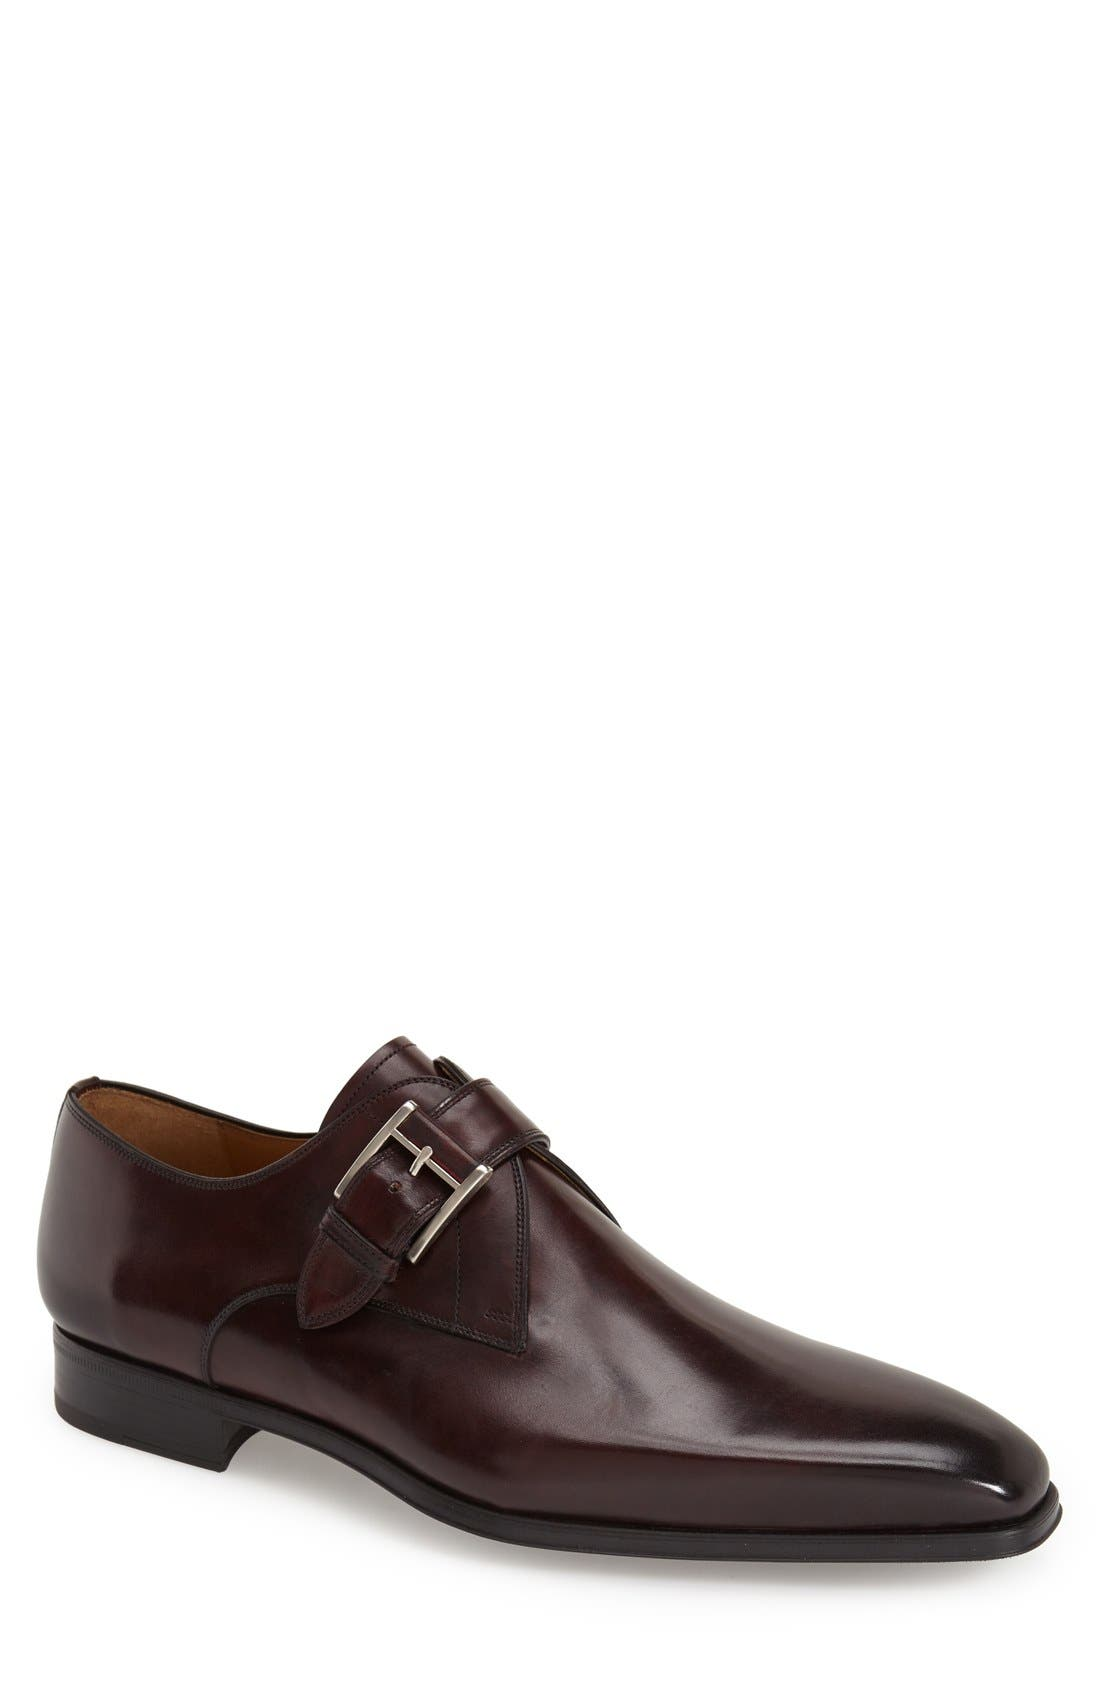 'Hugo' Monk Strap Slip-On,                         Main,                         color, Burgundy